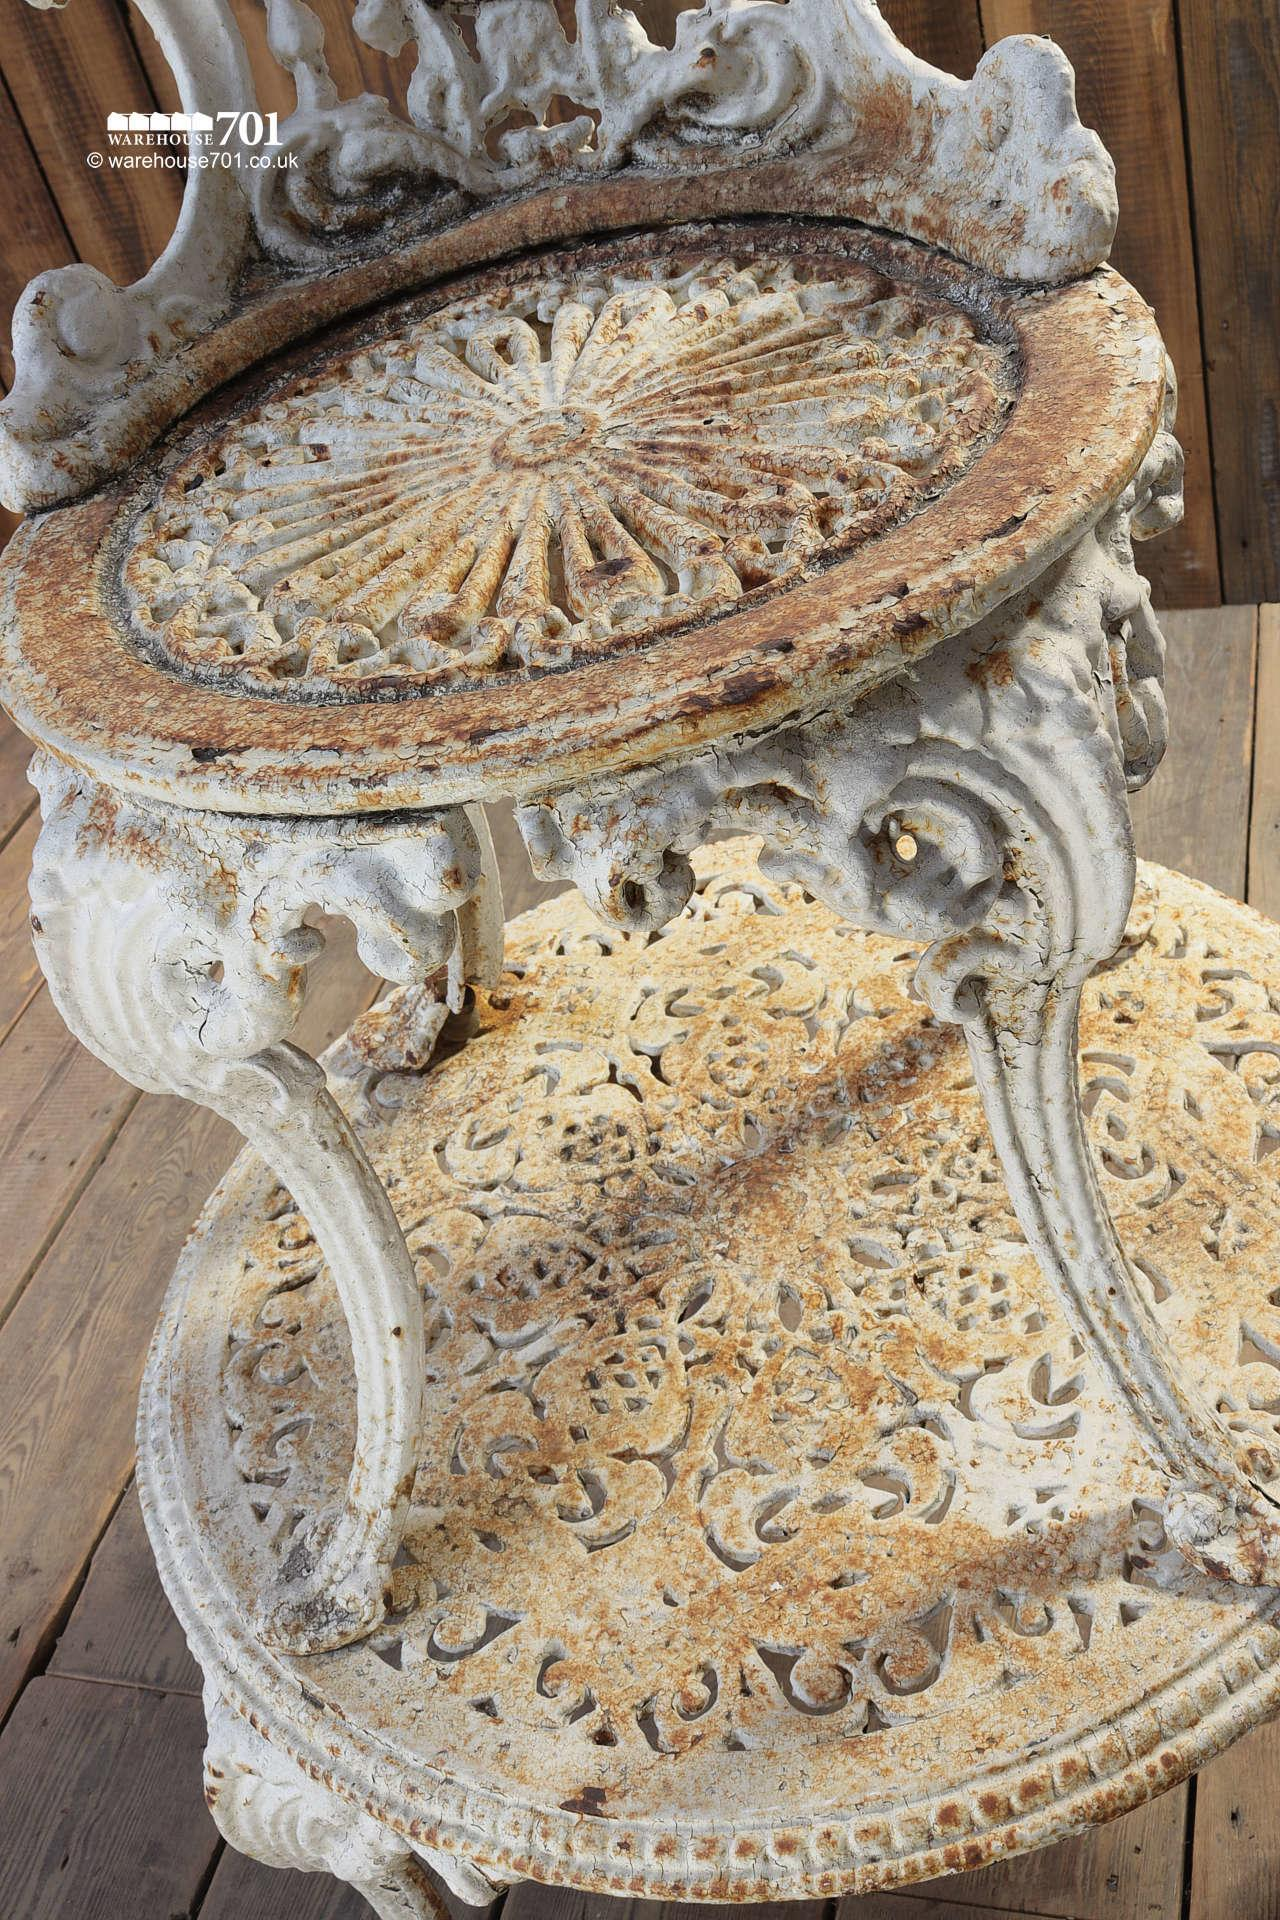 Antique Heavy Cast Iron White Garden Table and Chair #3